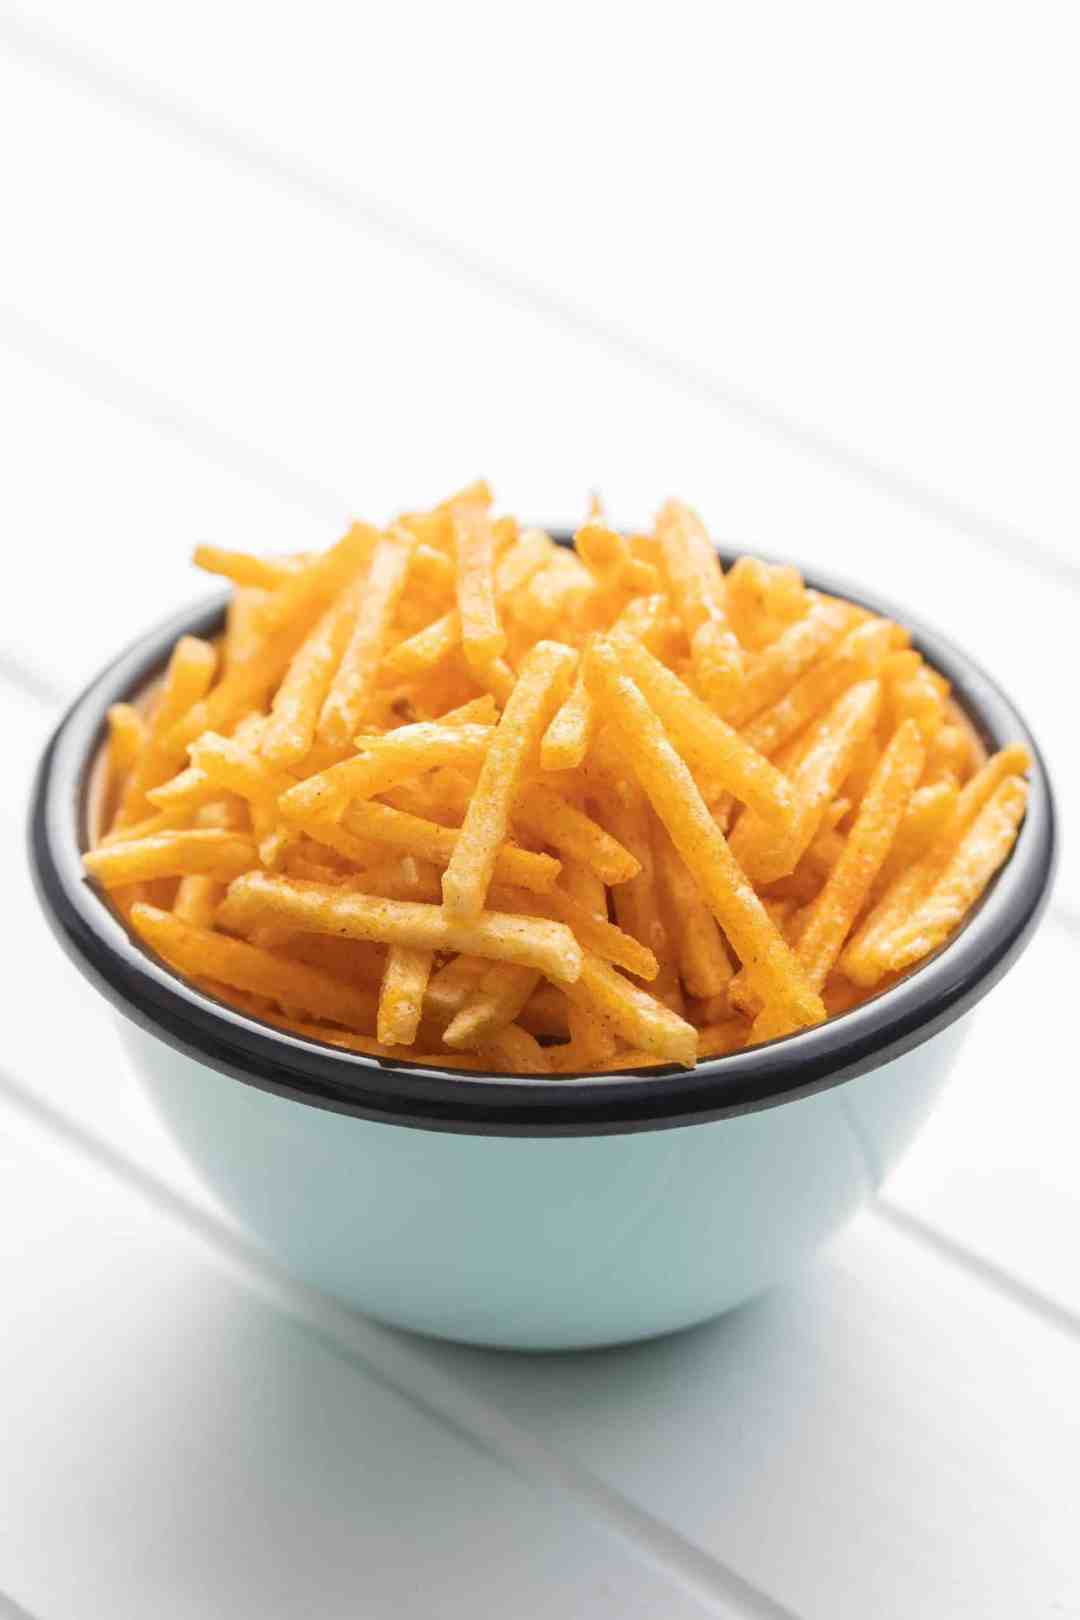 for the love of hummus - french fry dipping sauce bbq spice-2